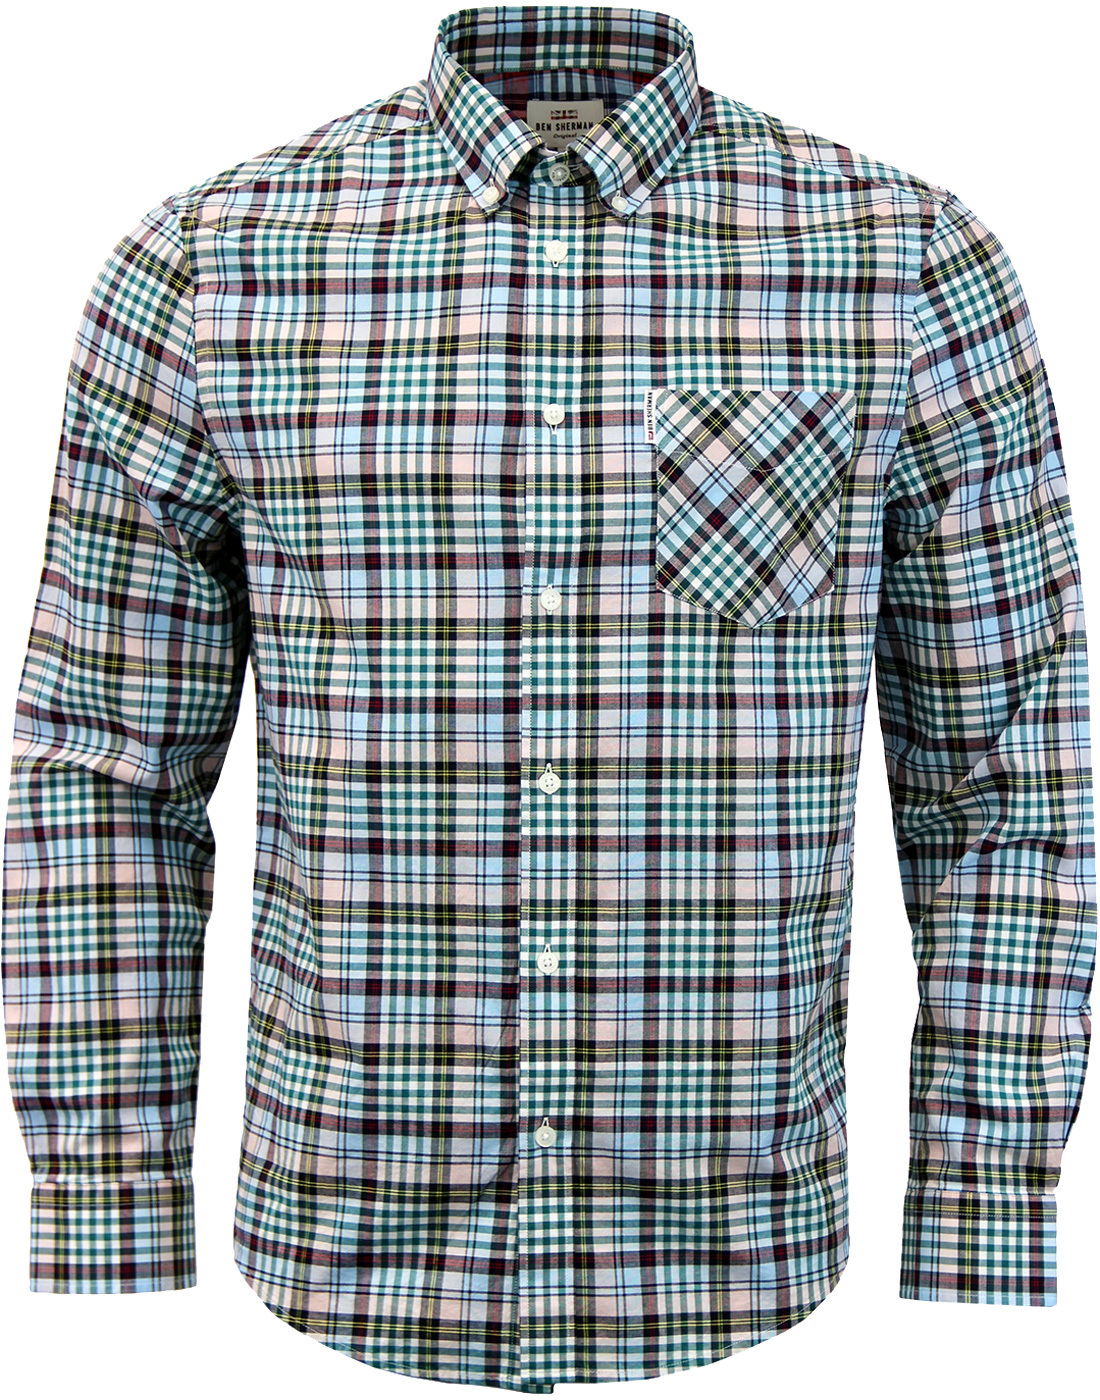 BEN SHERMAN 70s Gingham Tartan Check Shirt CHALK